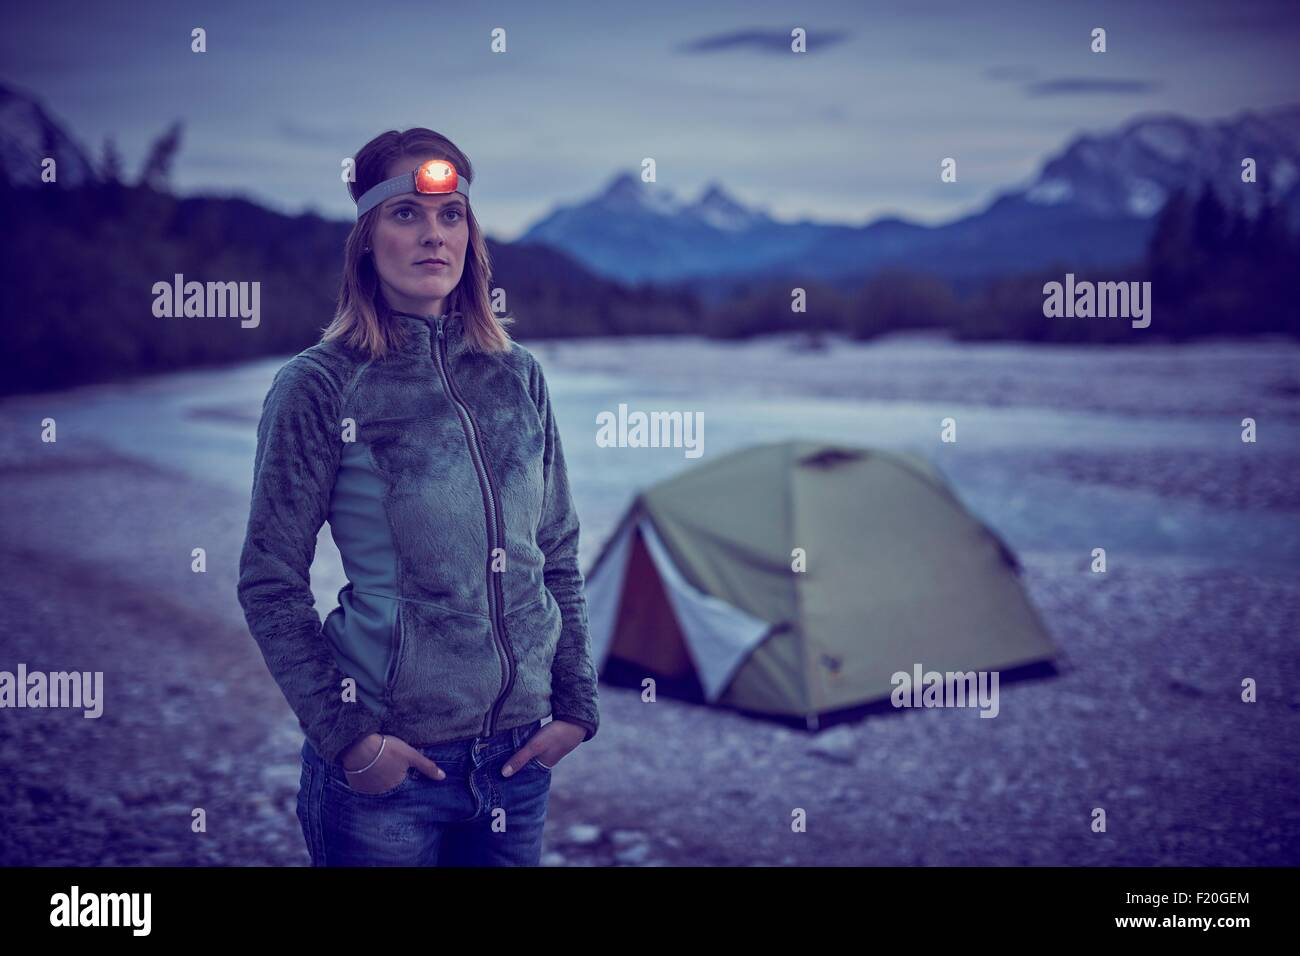 Young woman wearing headlamp, hands in pockets, looking away, Wallgau, Bavaria, Germany - Stock Image